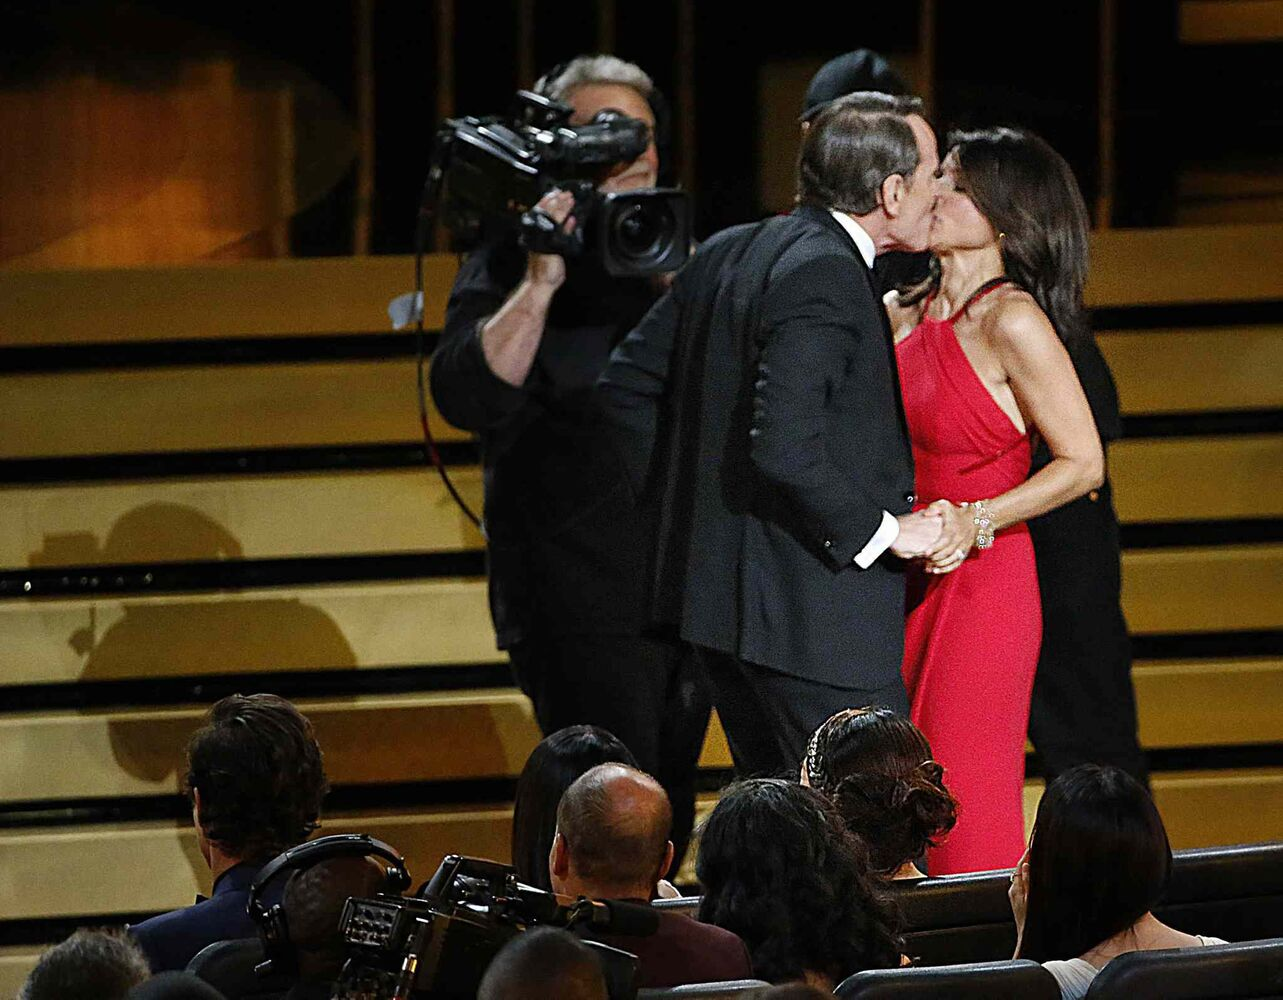 Julia Louis-Dreyfus, right, is kissed by Bryan Cranston during the 66th Annual Primetime Emmy Awards at Nokia Theatre at L.A. Live in Los Angeles Monday. (Tribune Media MCT)